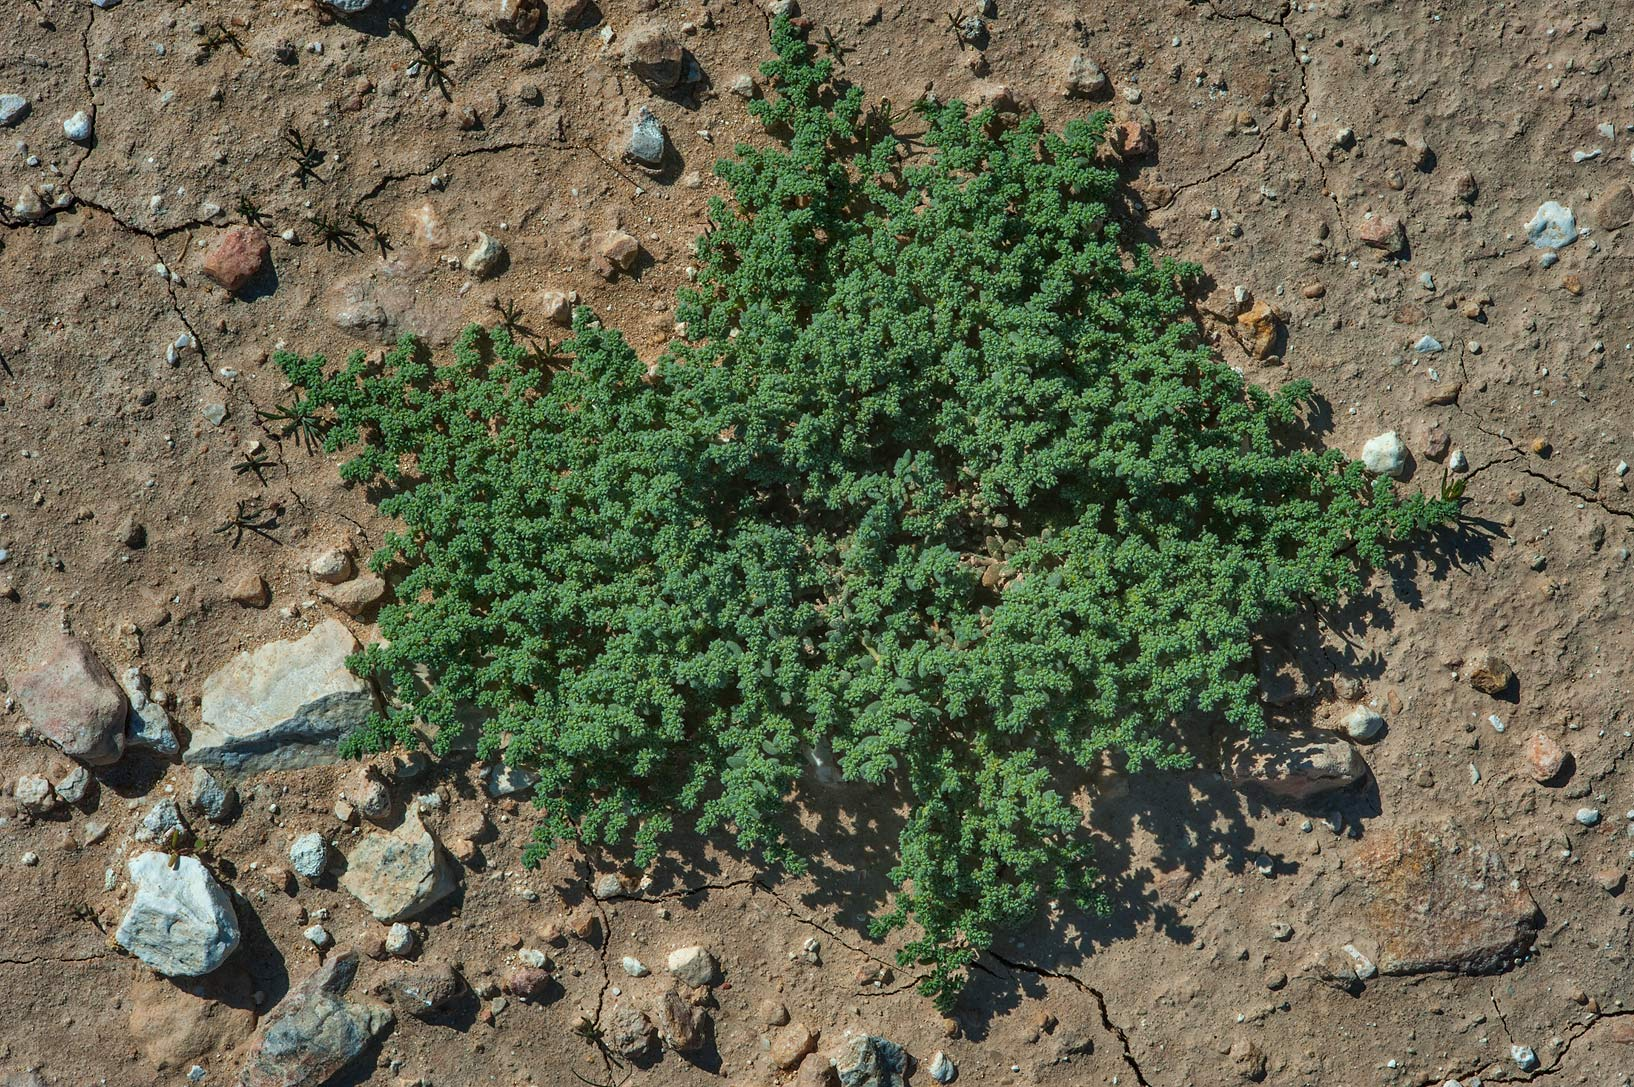 Herniaria hemistemon (local name Ghebayra) in a...near Route 77 to Ras Laffan. Qatar